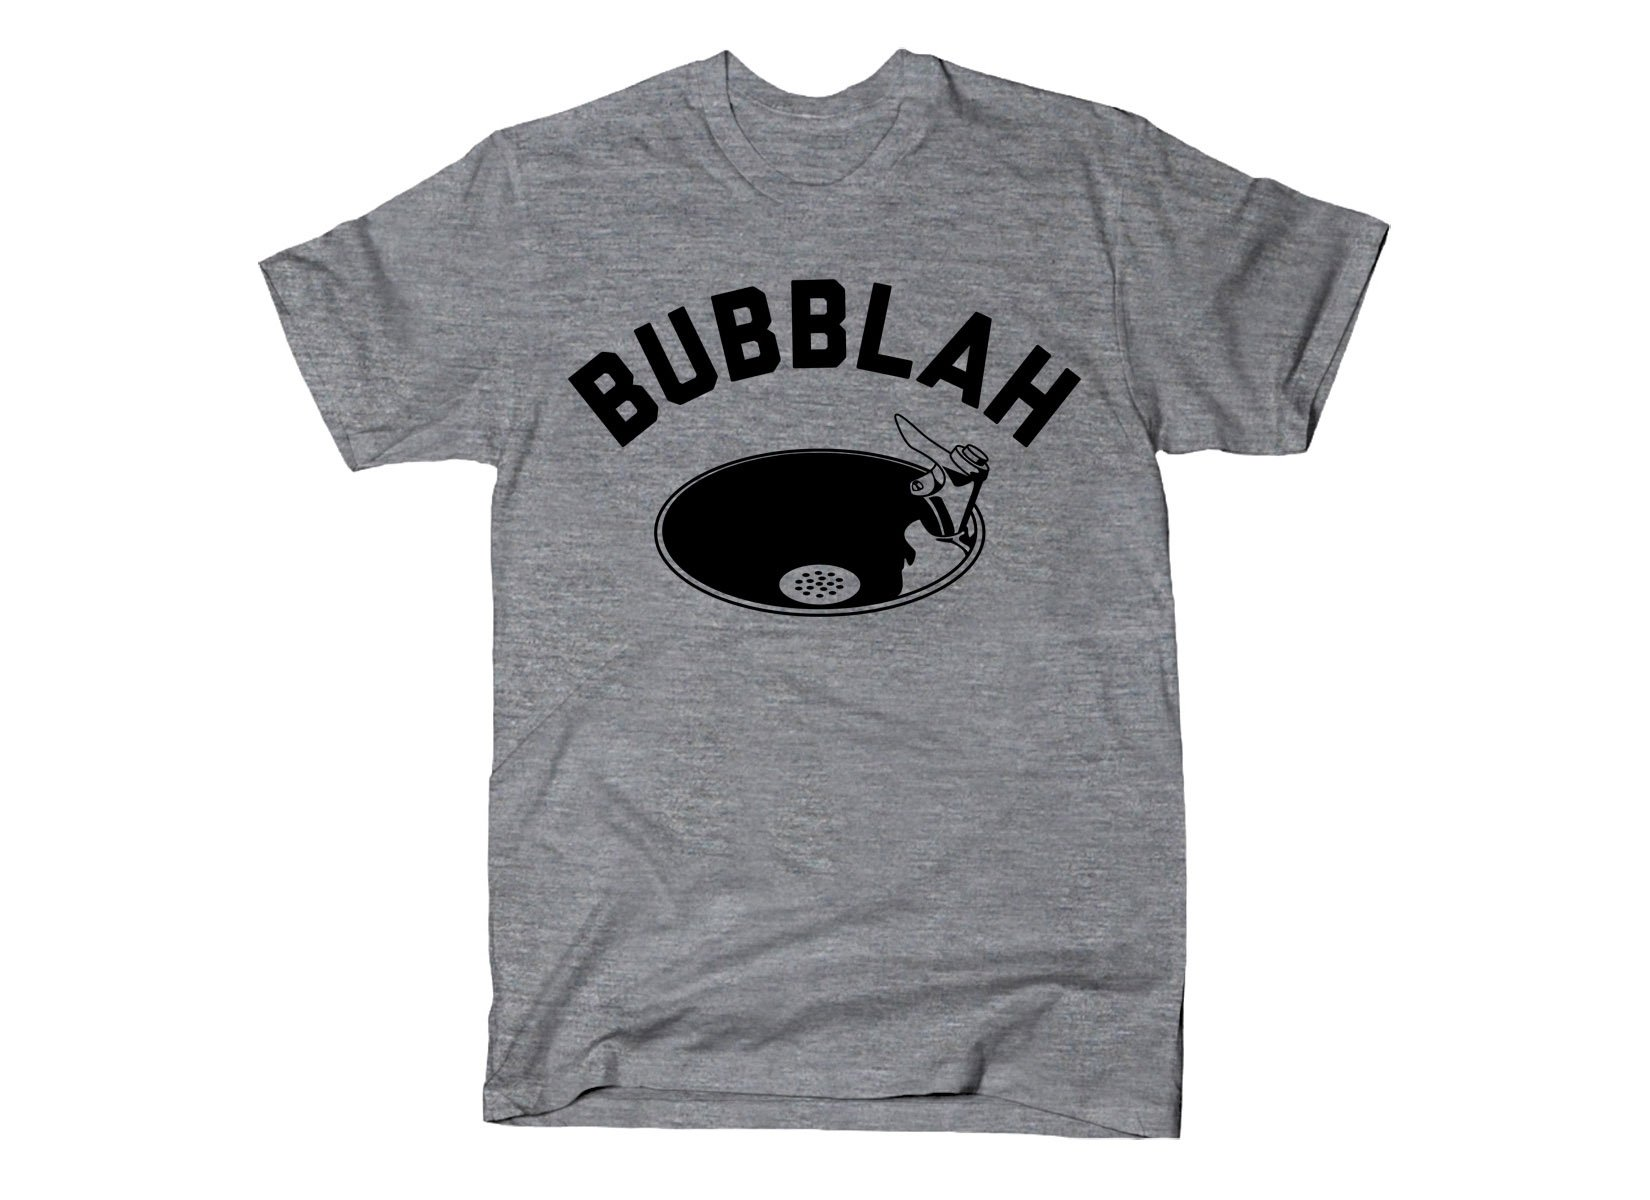 Bubblah on Mens T-Shirt